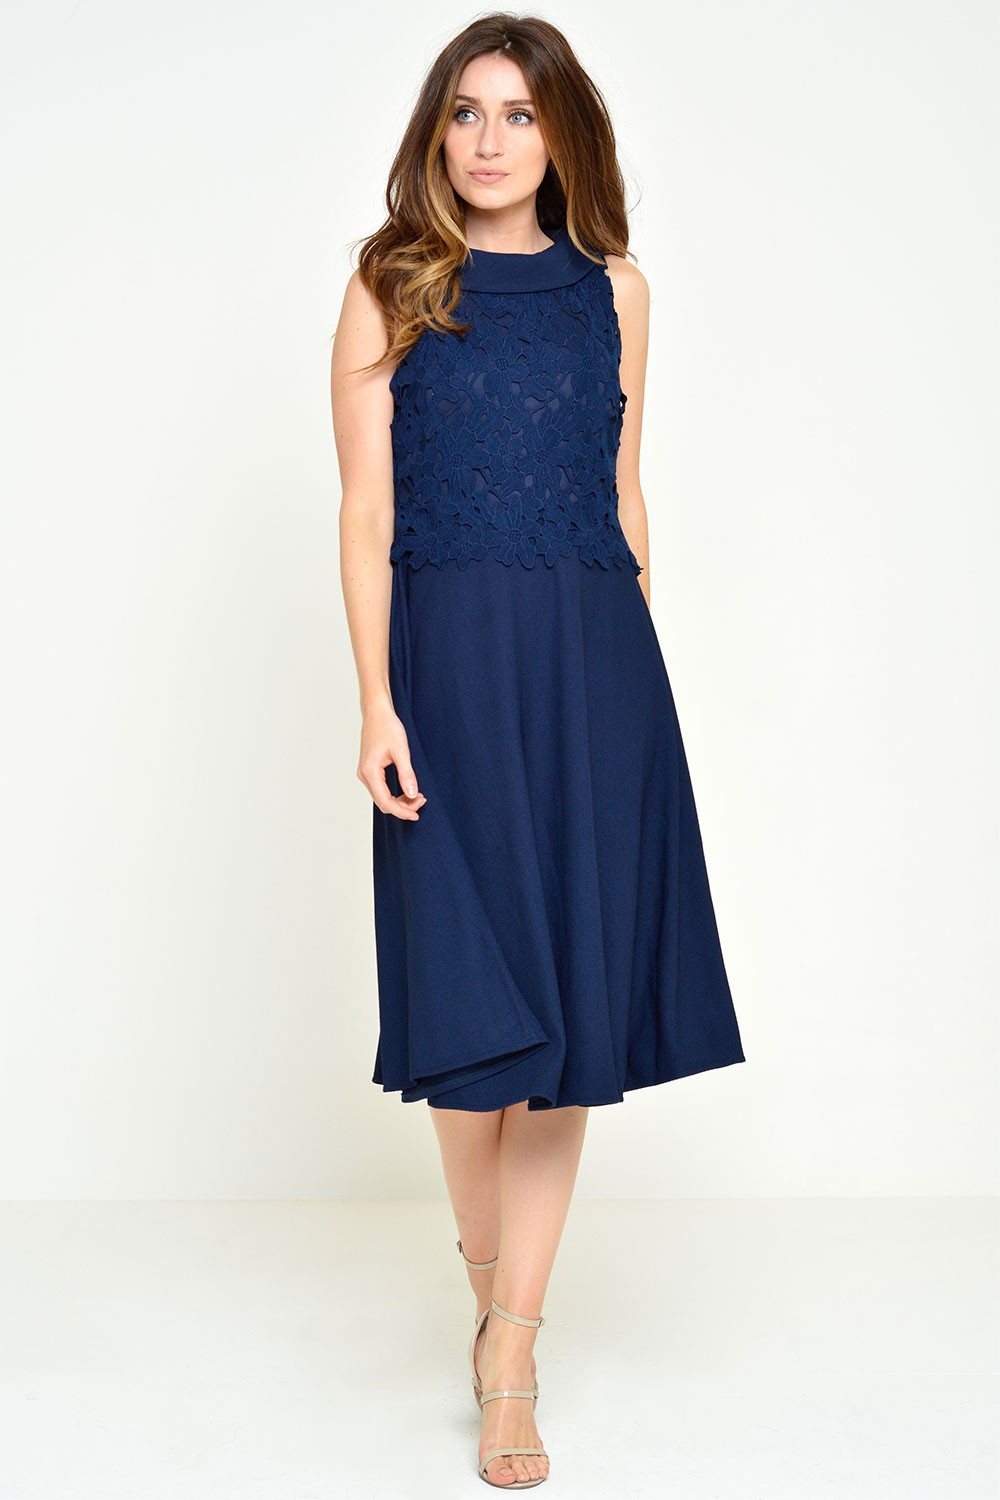 marie crochet top dress in navy